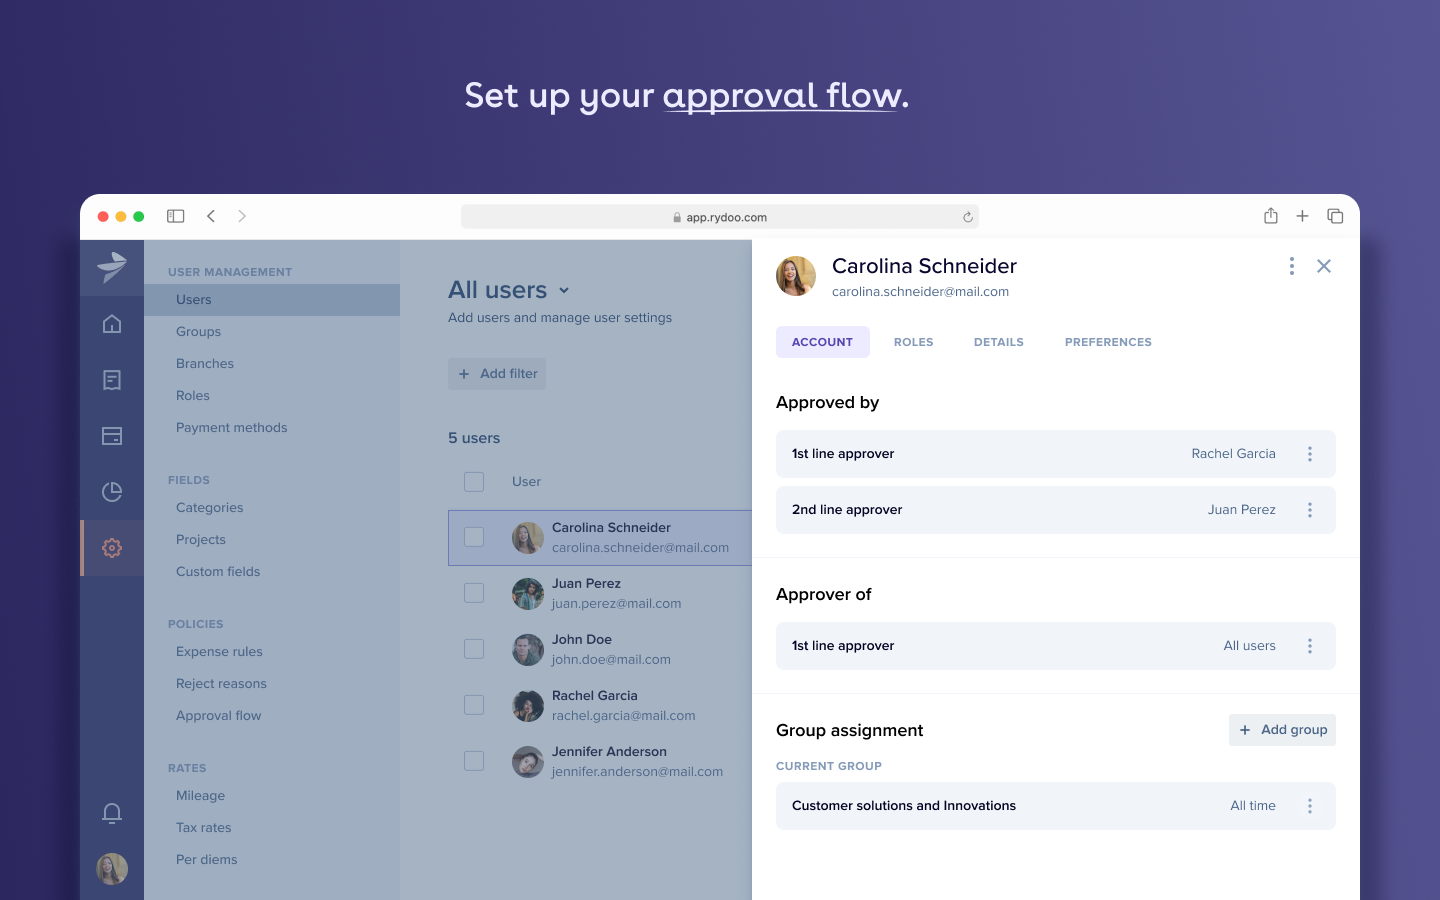 Set up your approval flow